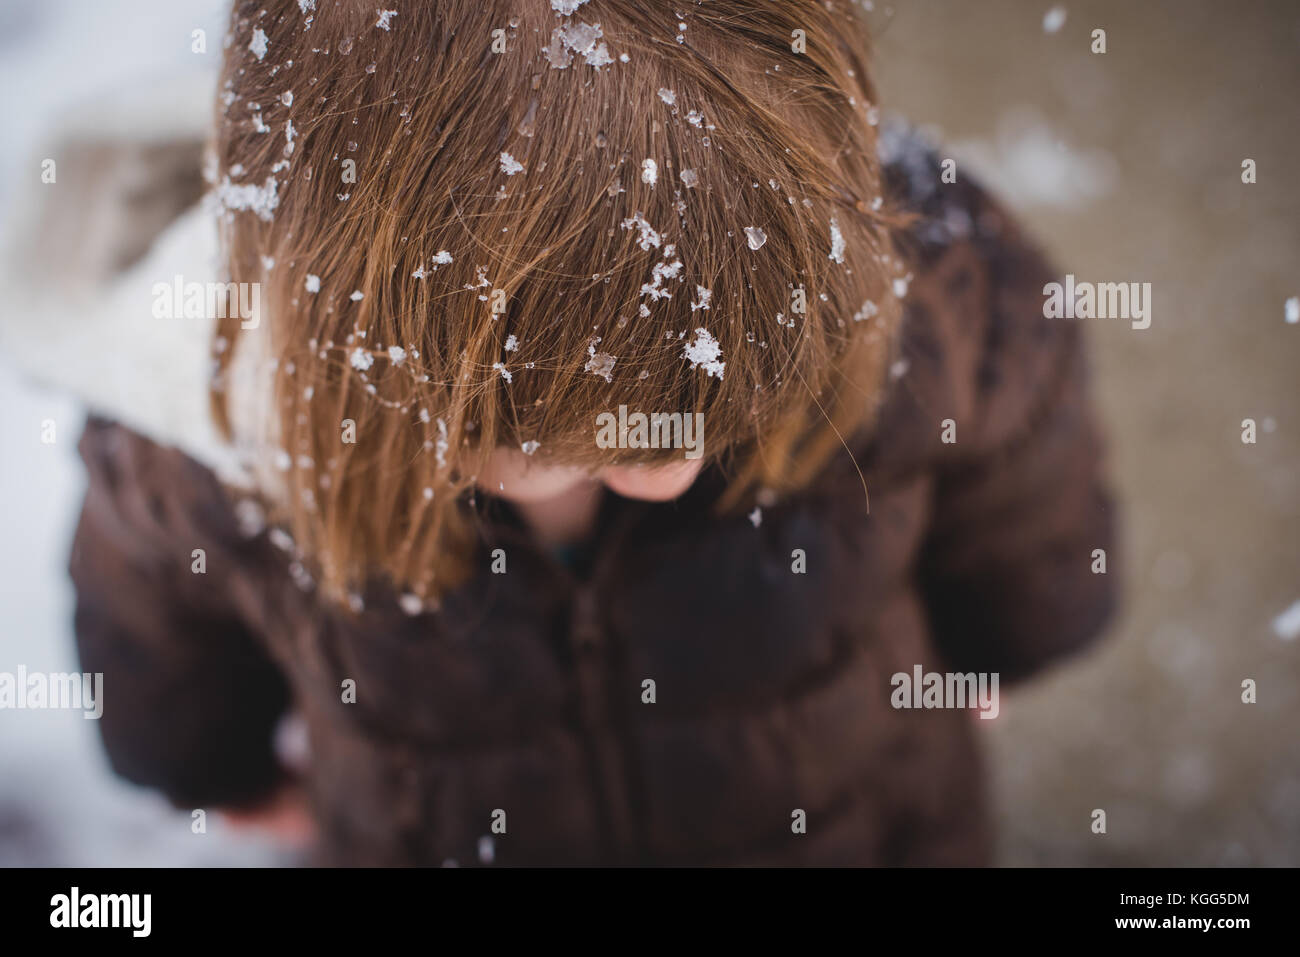 Looking down on a toddler wearing a winter coat with snow in her hair during the winter - Stock Image